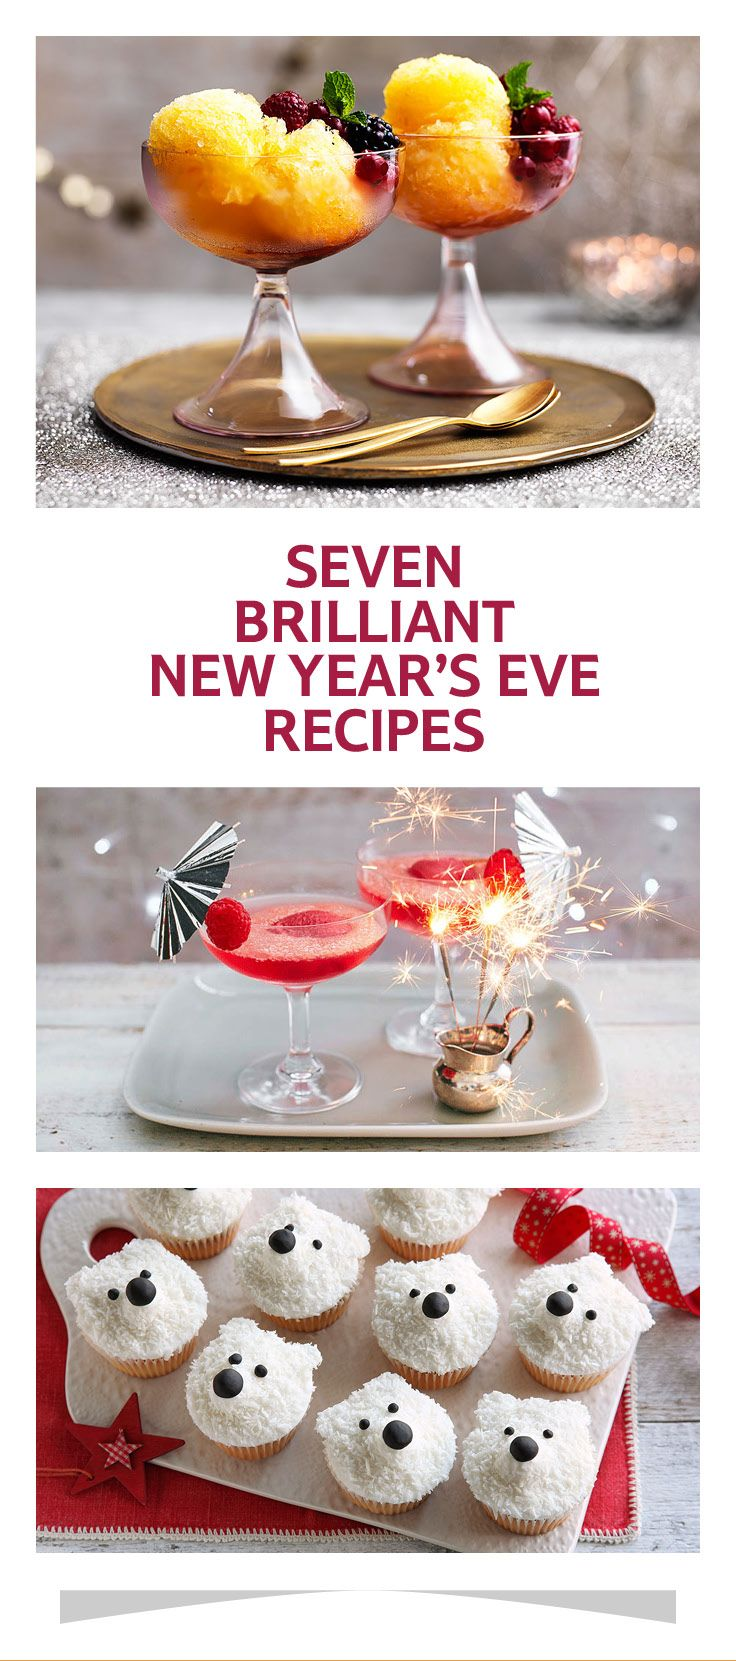 Seven brilliant New Year's Eve recipes (With images) New